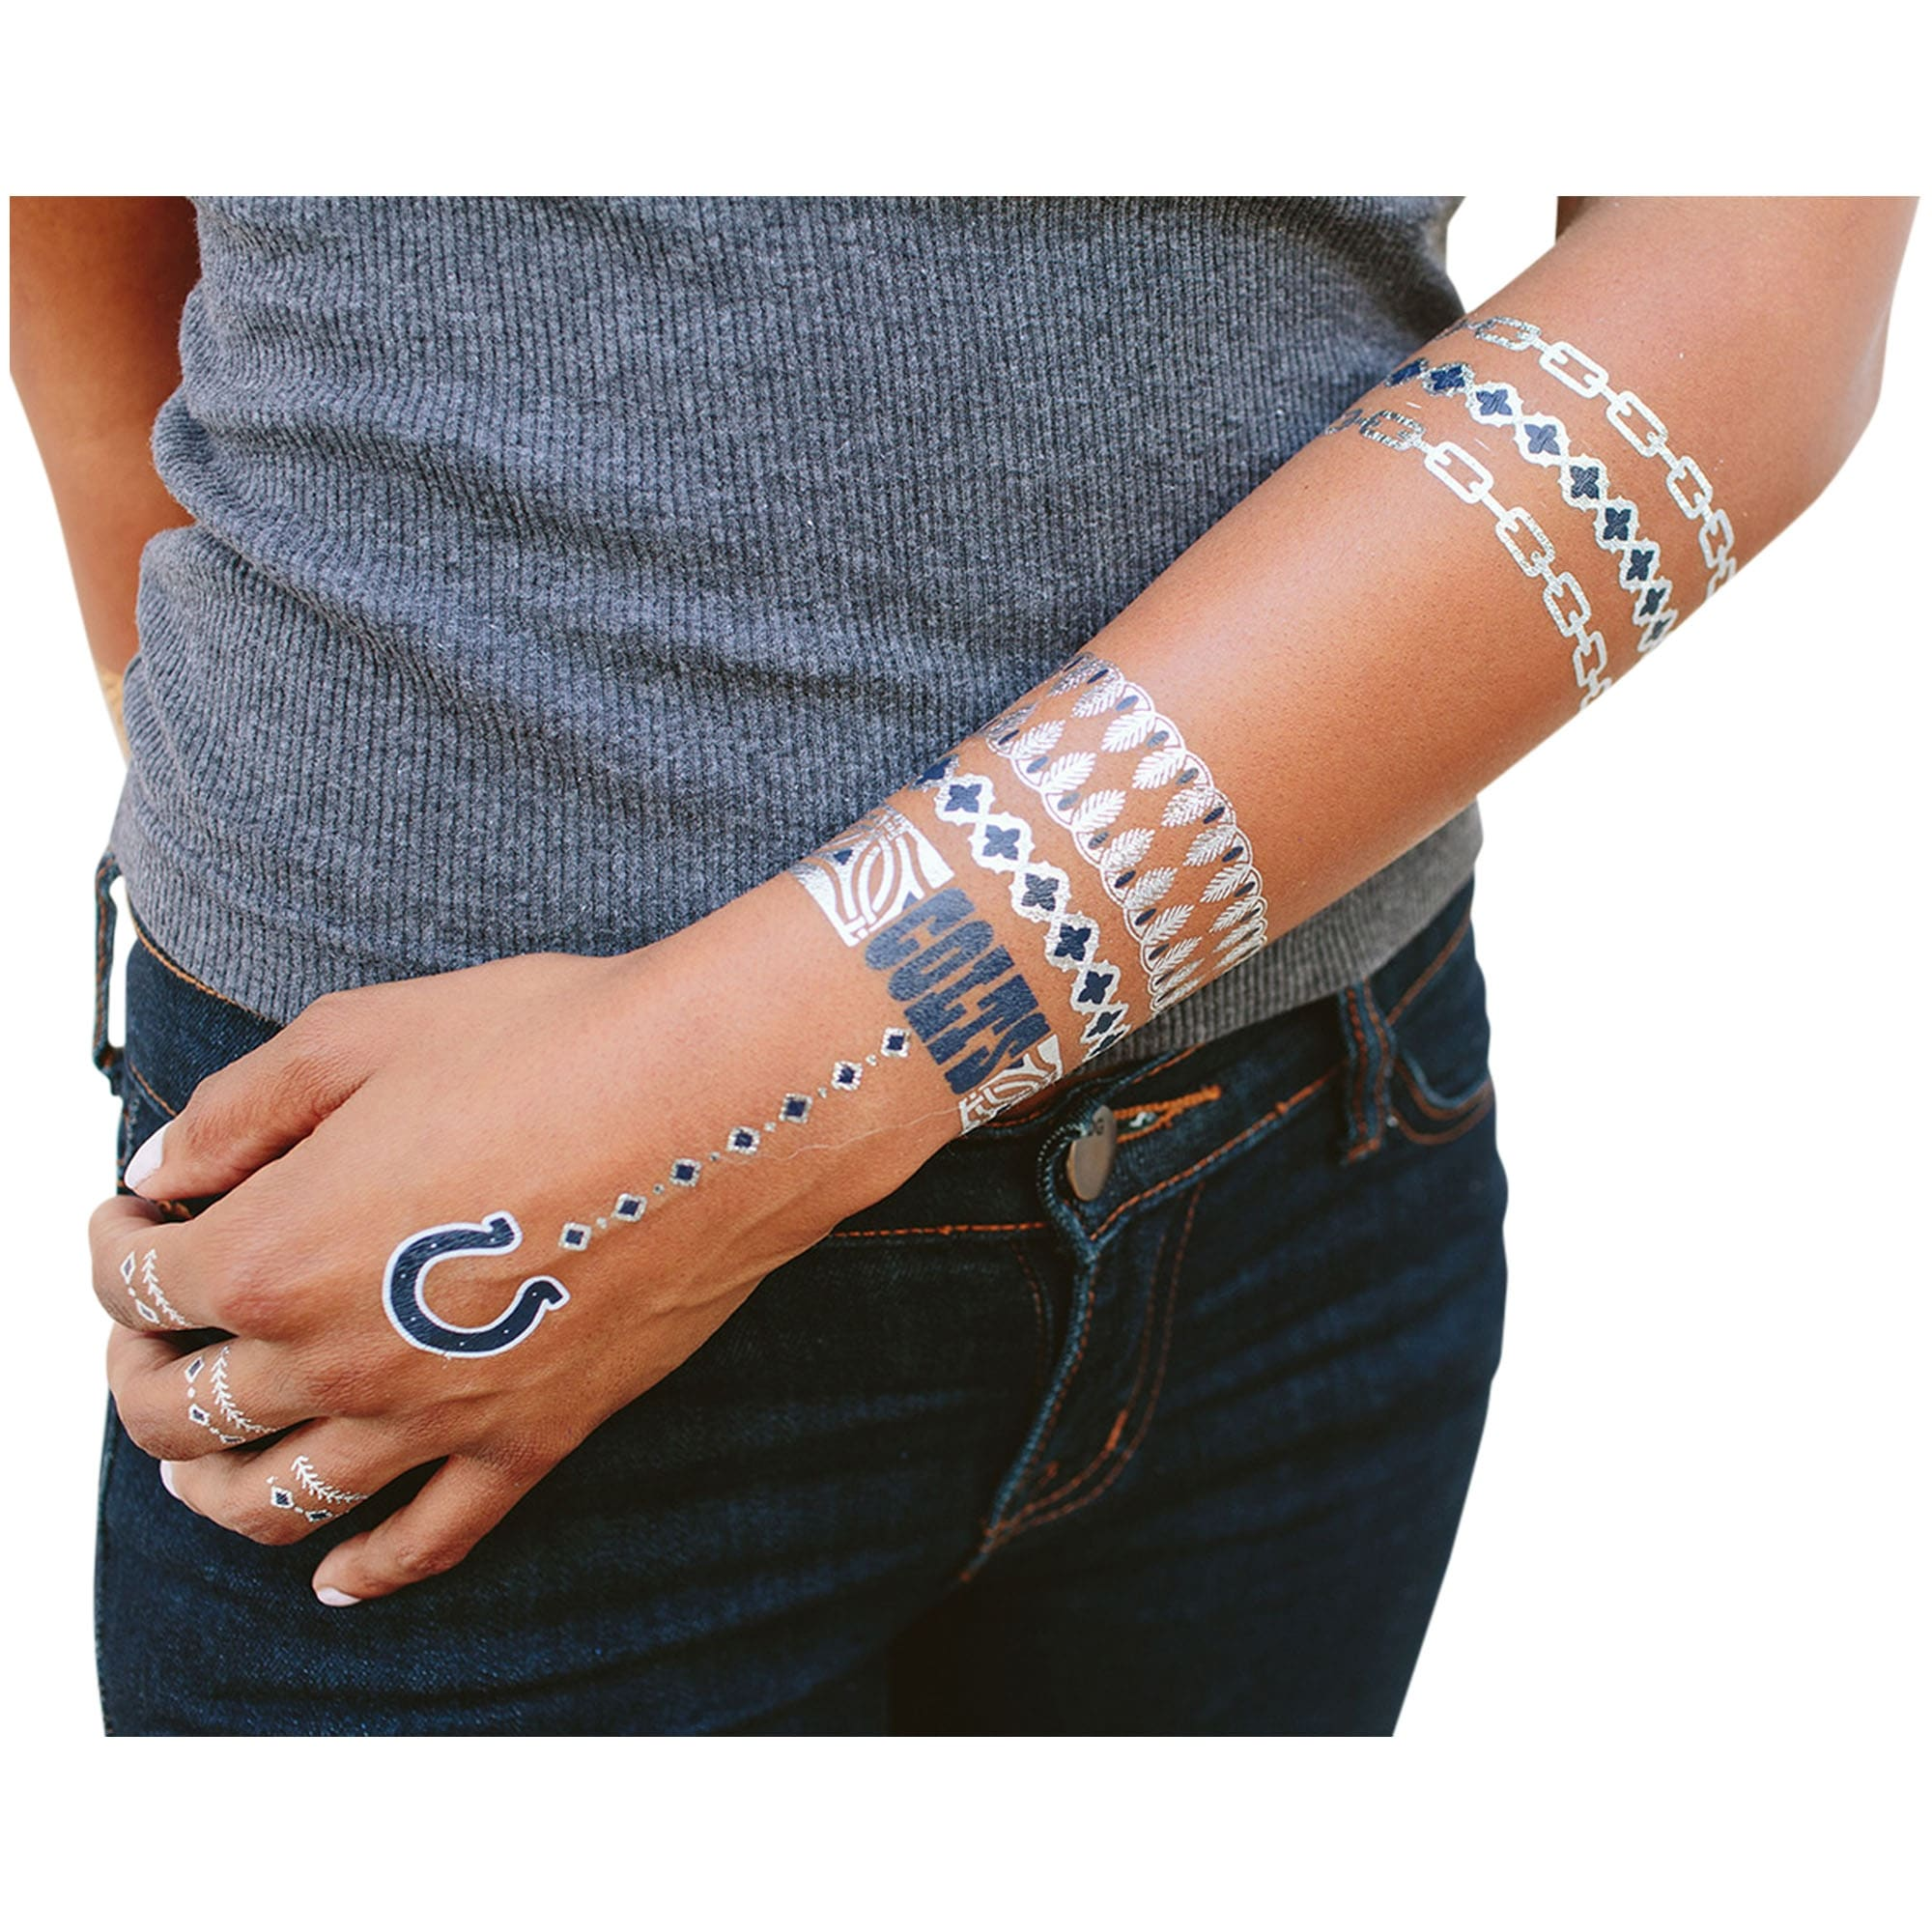 Indianapolis Colts Metallic Fashion Tattoos